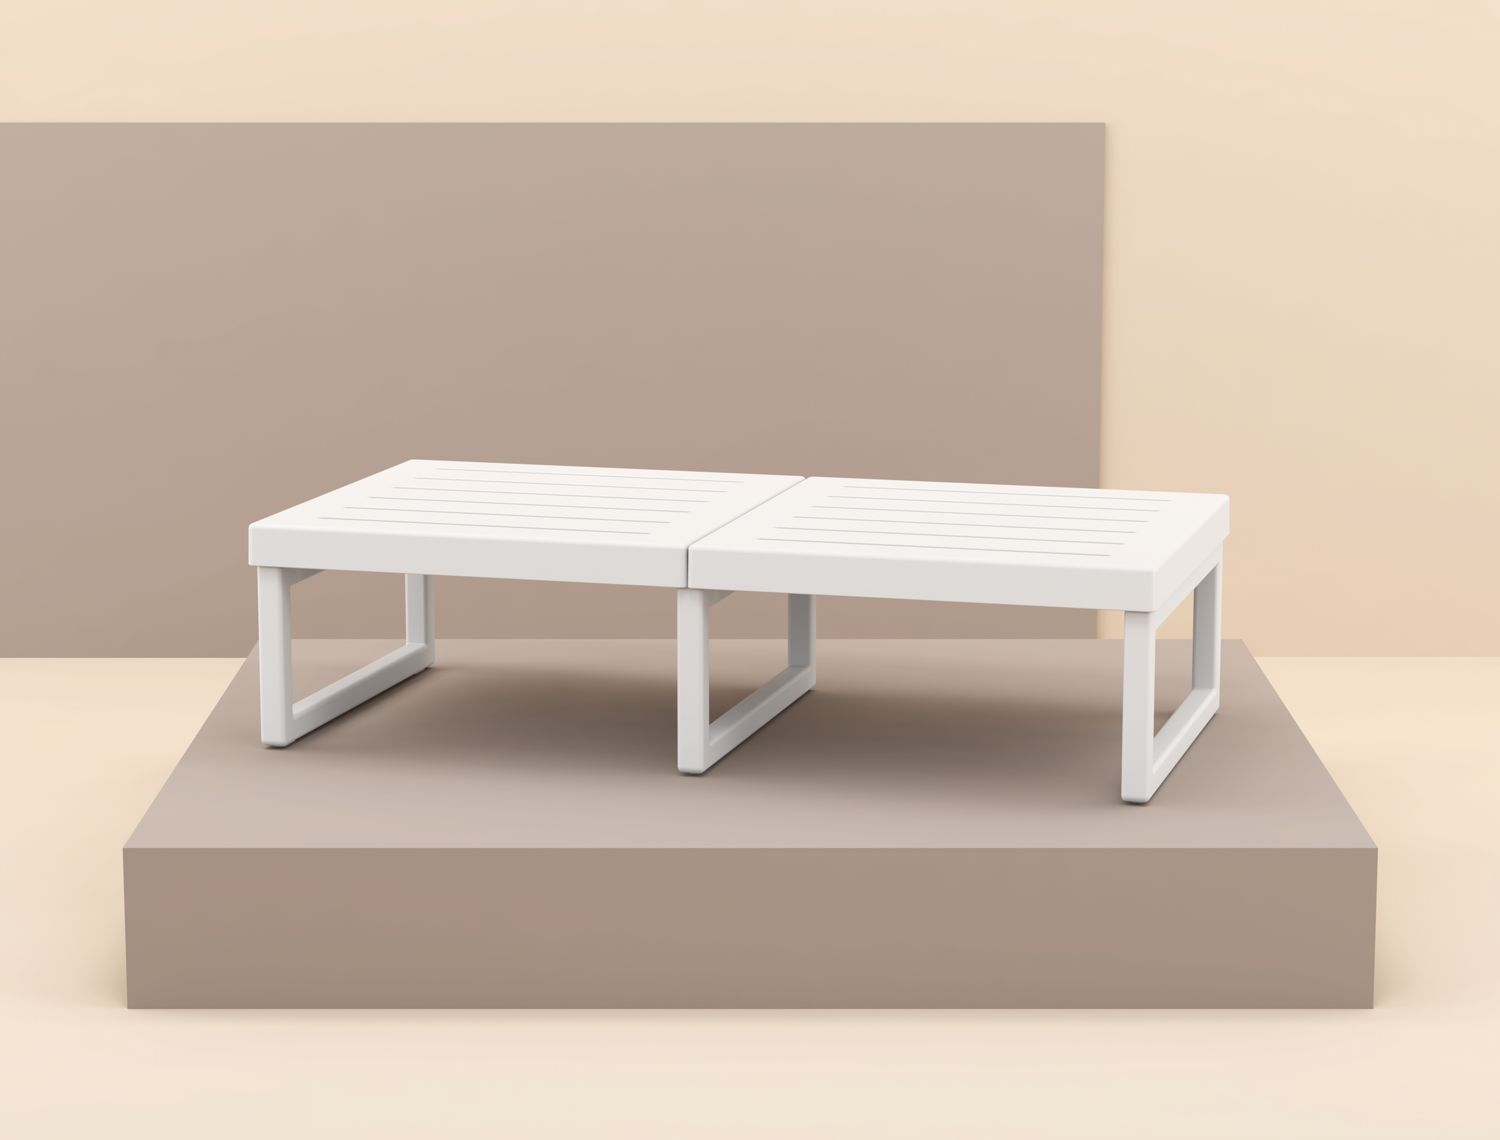 Mykonos Rectangle Coffe Table White ISP138-WHI - 1